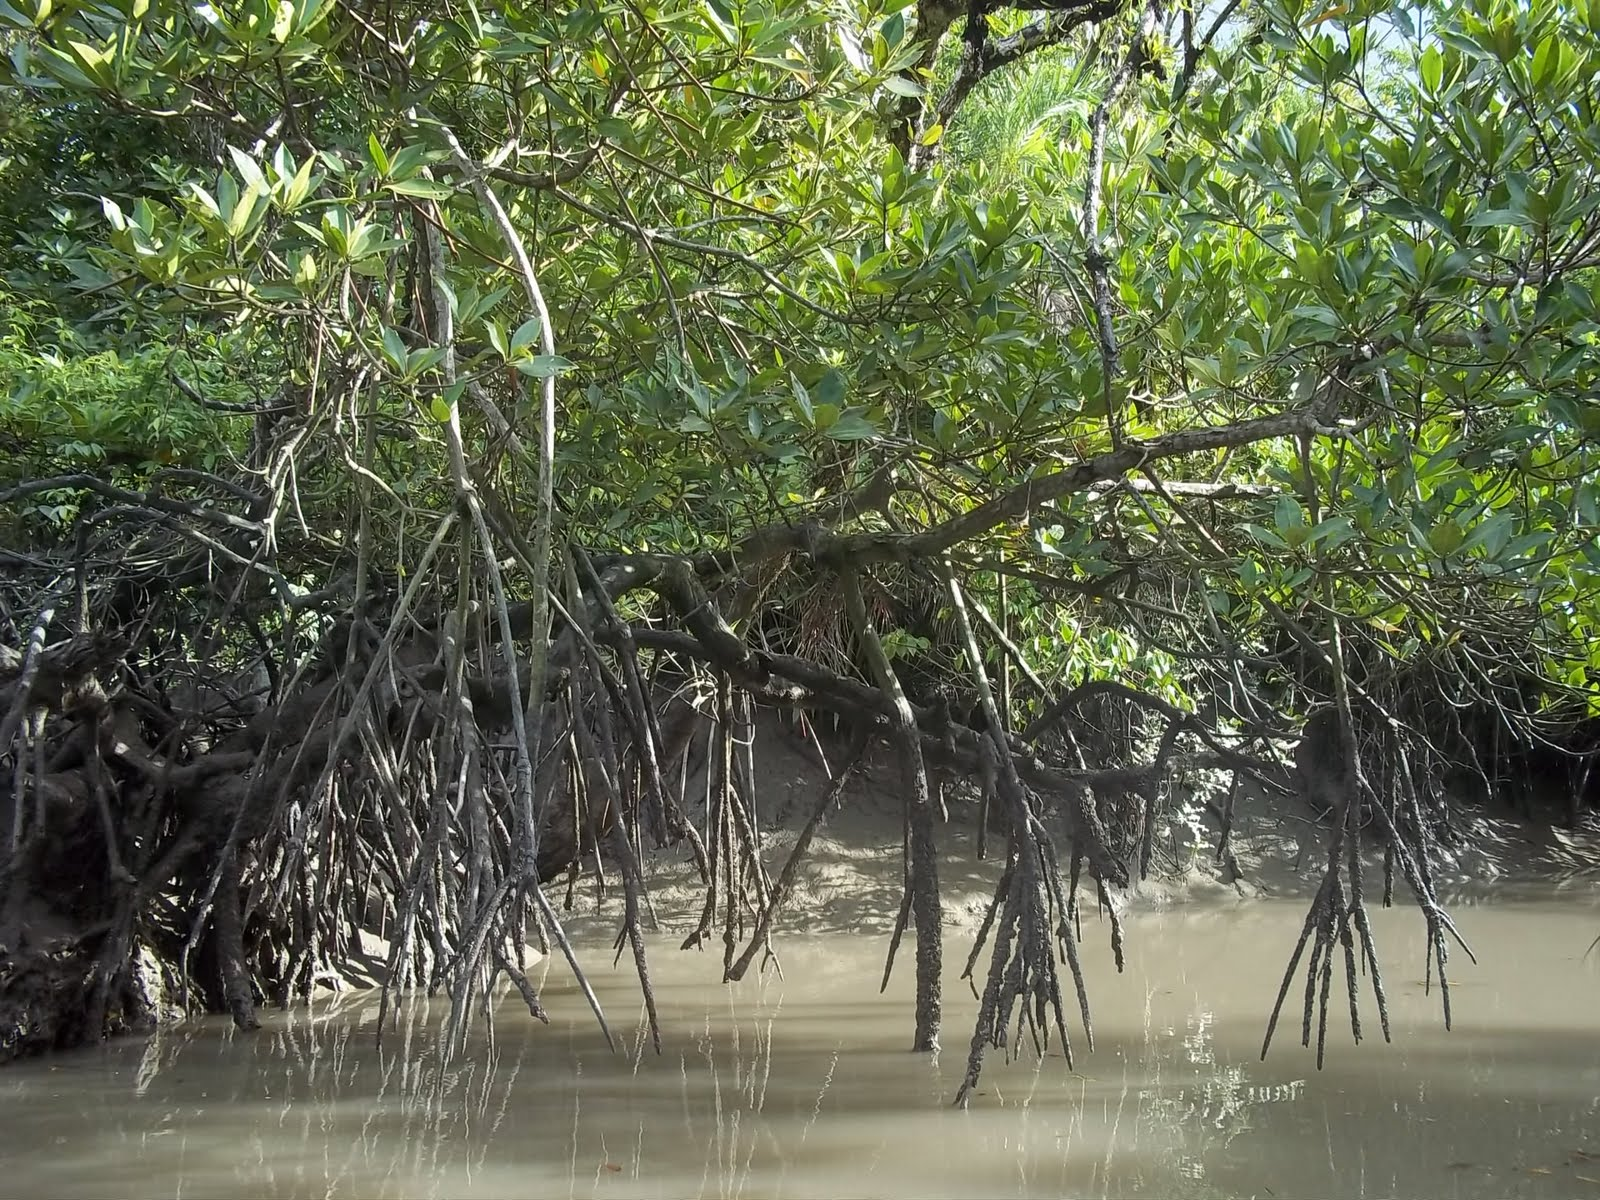 the sundarban forest Sundarban is the only mangrove forest in the world which is the home of tiger sundarban tiger reserve has the highest tiger population in the world.